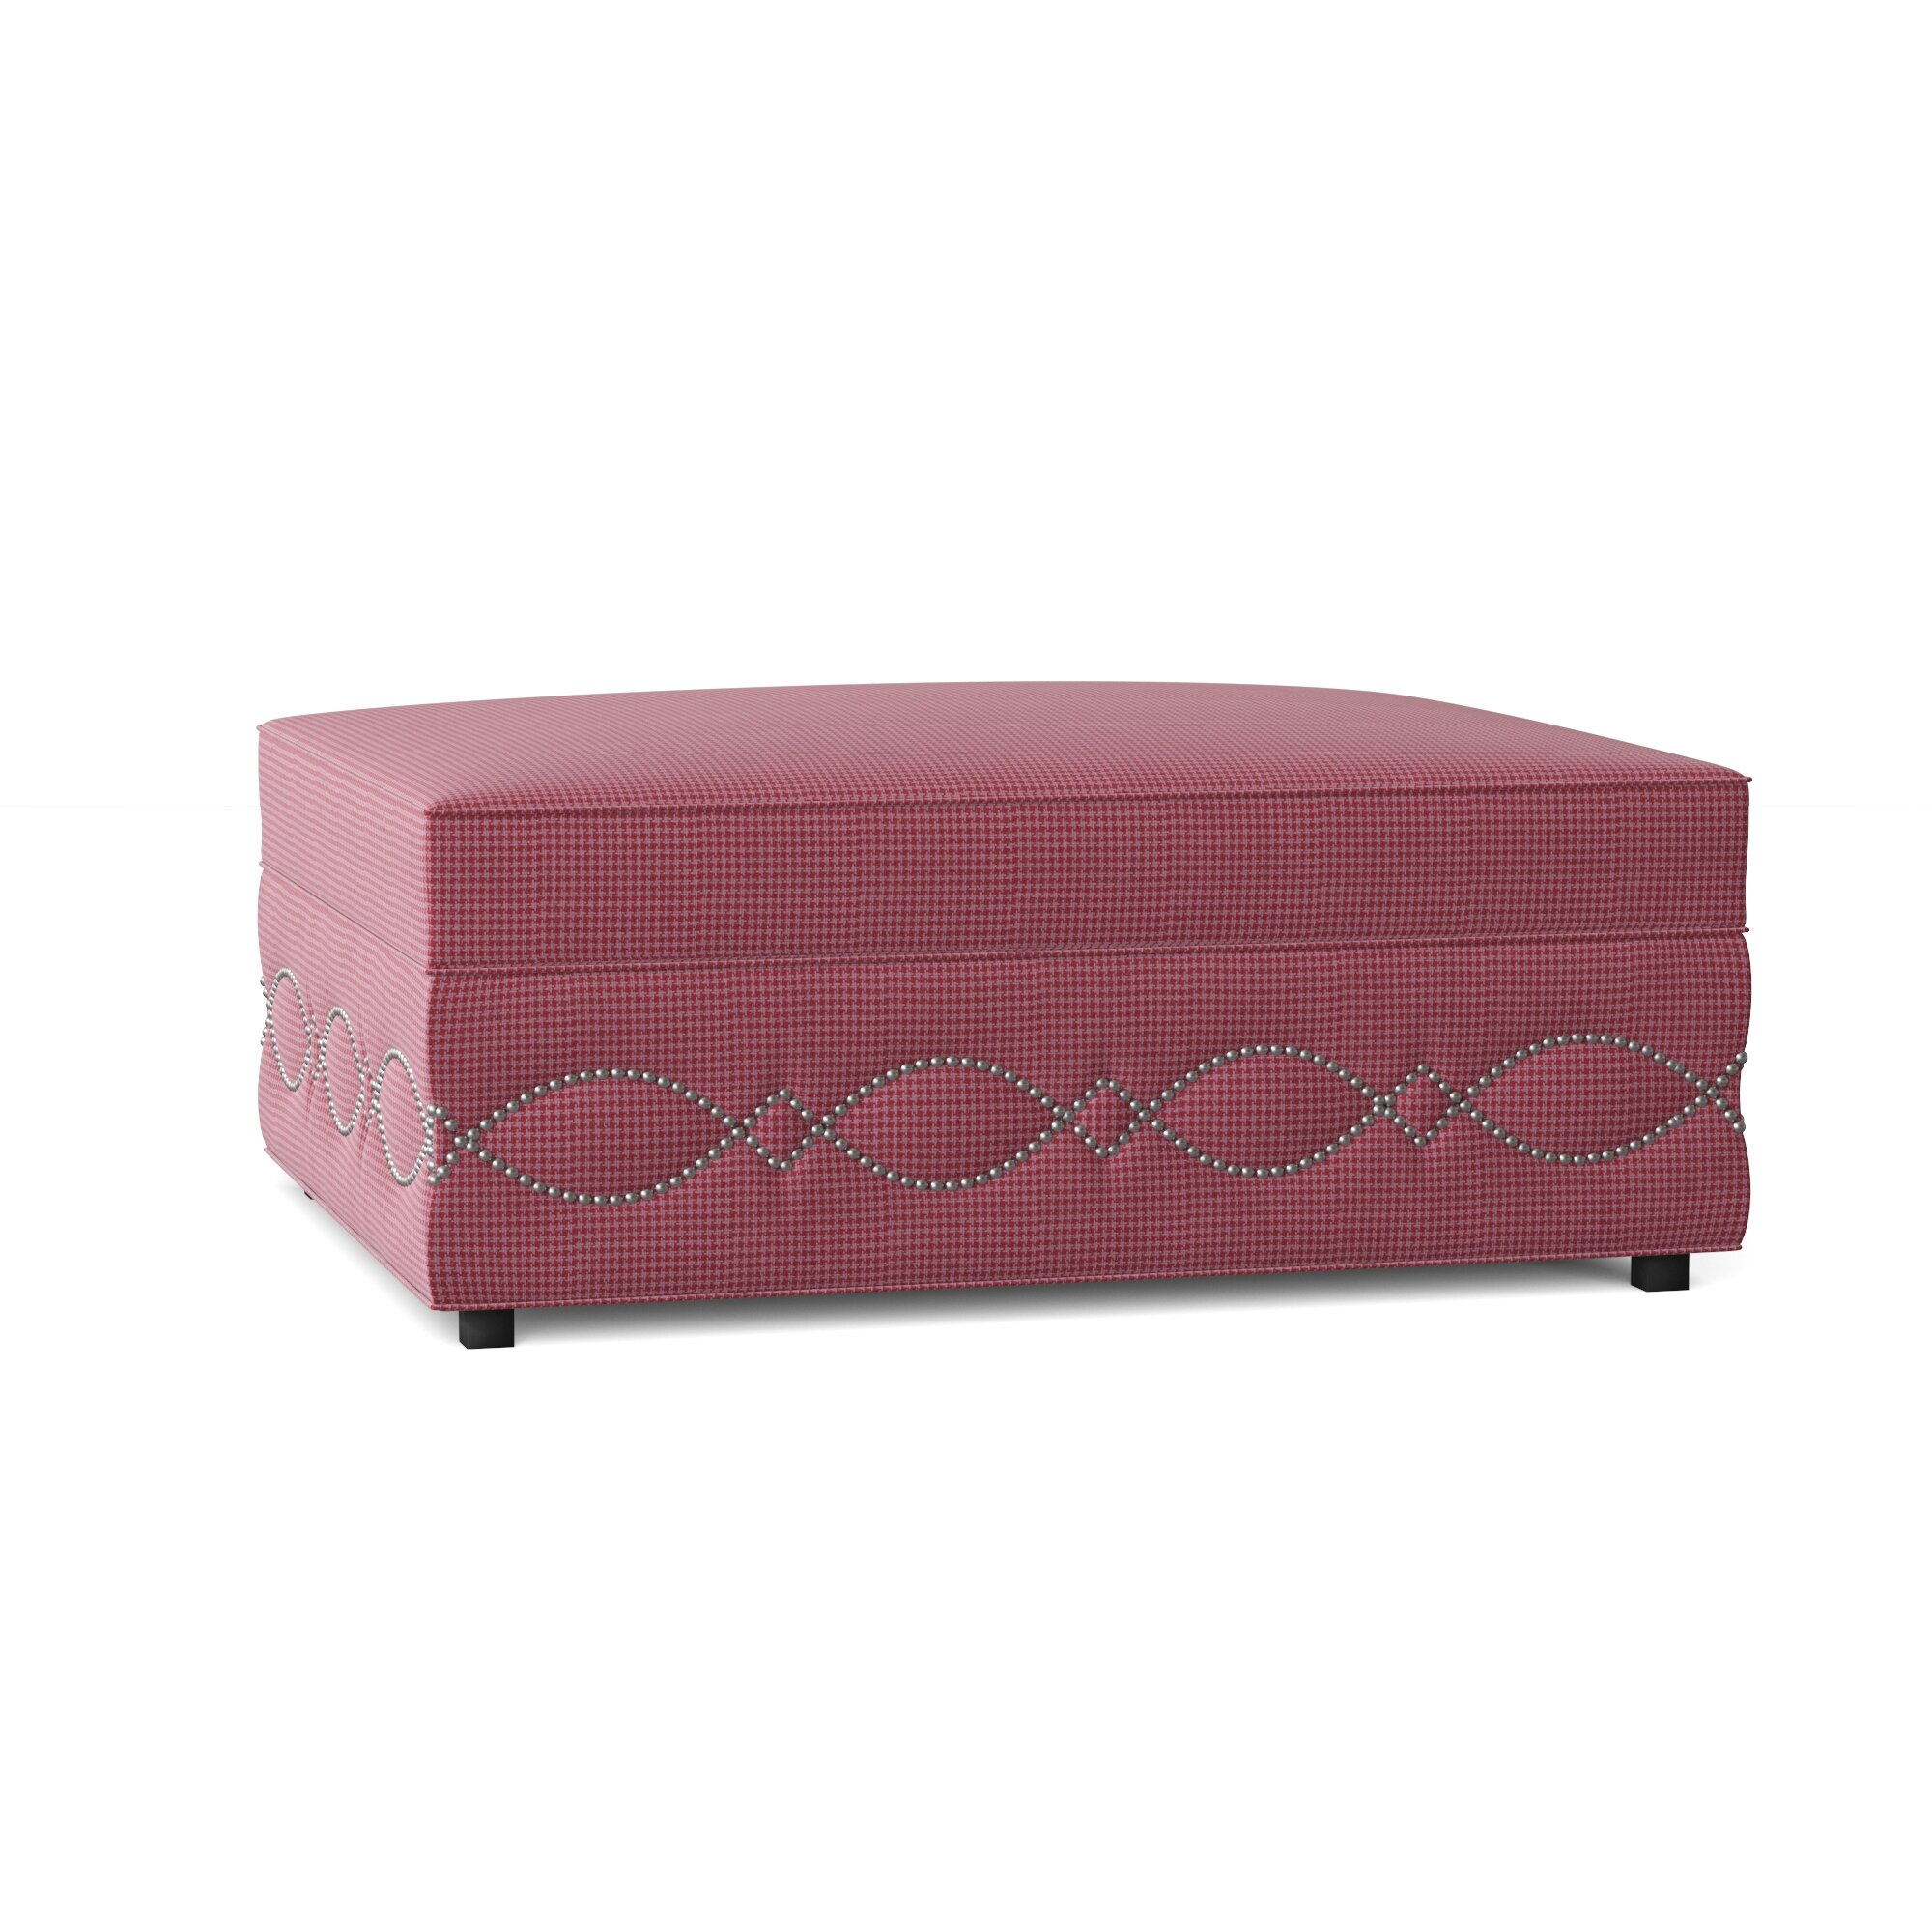 Pink Storage Ottomans Poufs You Ll Love In 2021 Wayfair